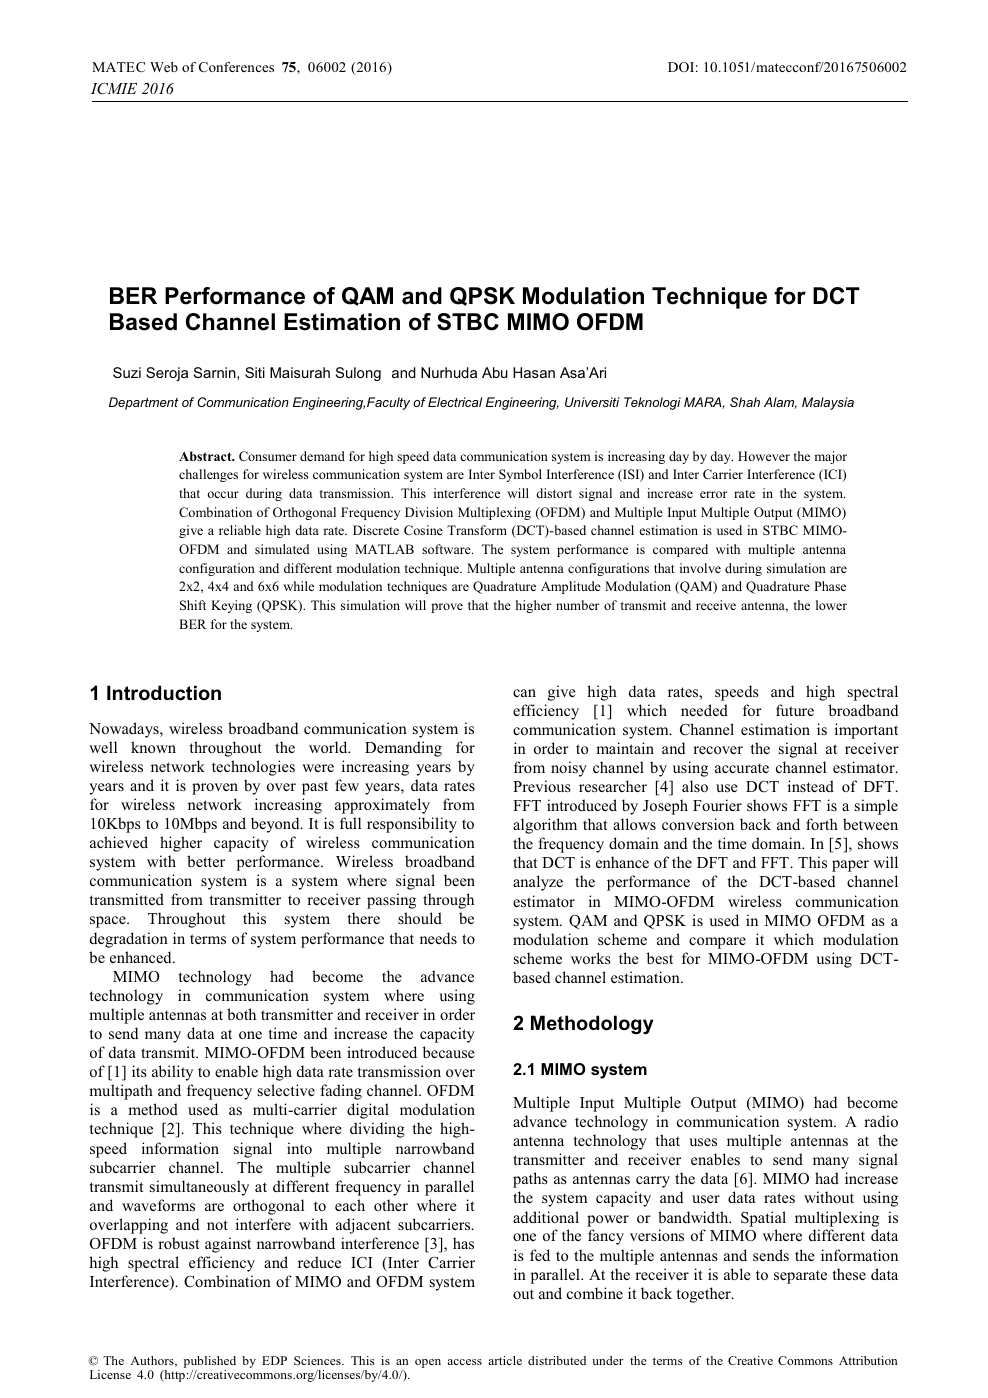 BER Performance of QAM and QPSK Modulation Technique for DCT Based